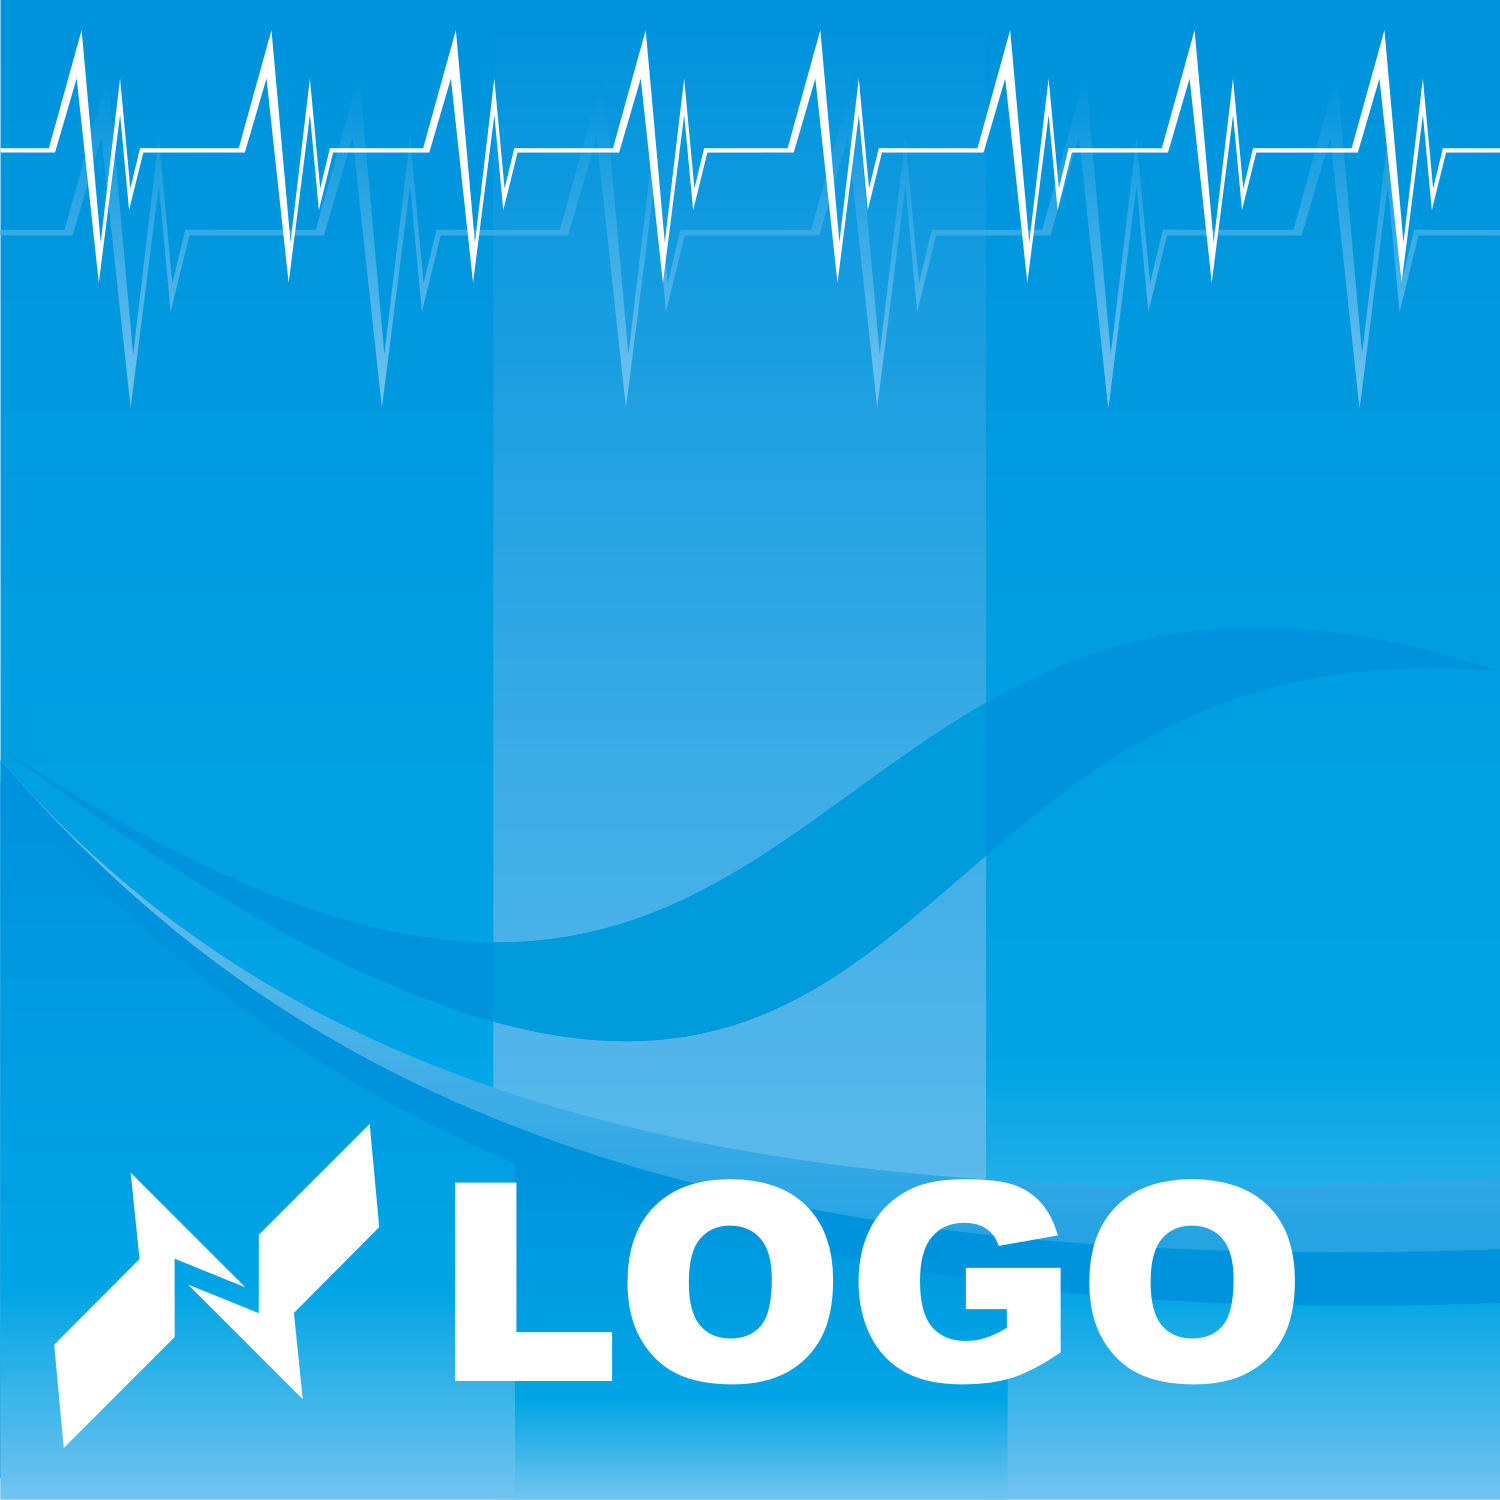 Electric logo on a blue background. Free vector template